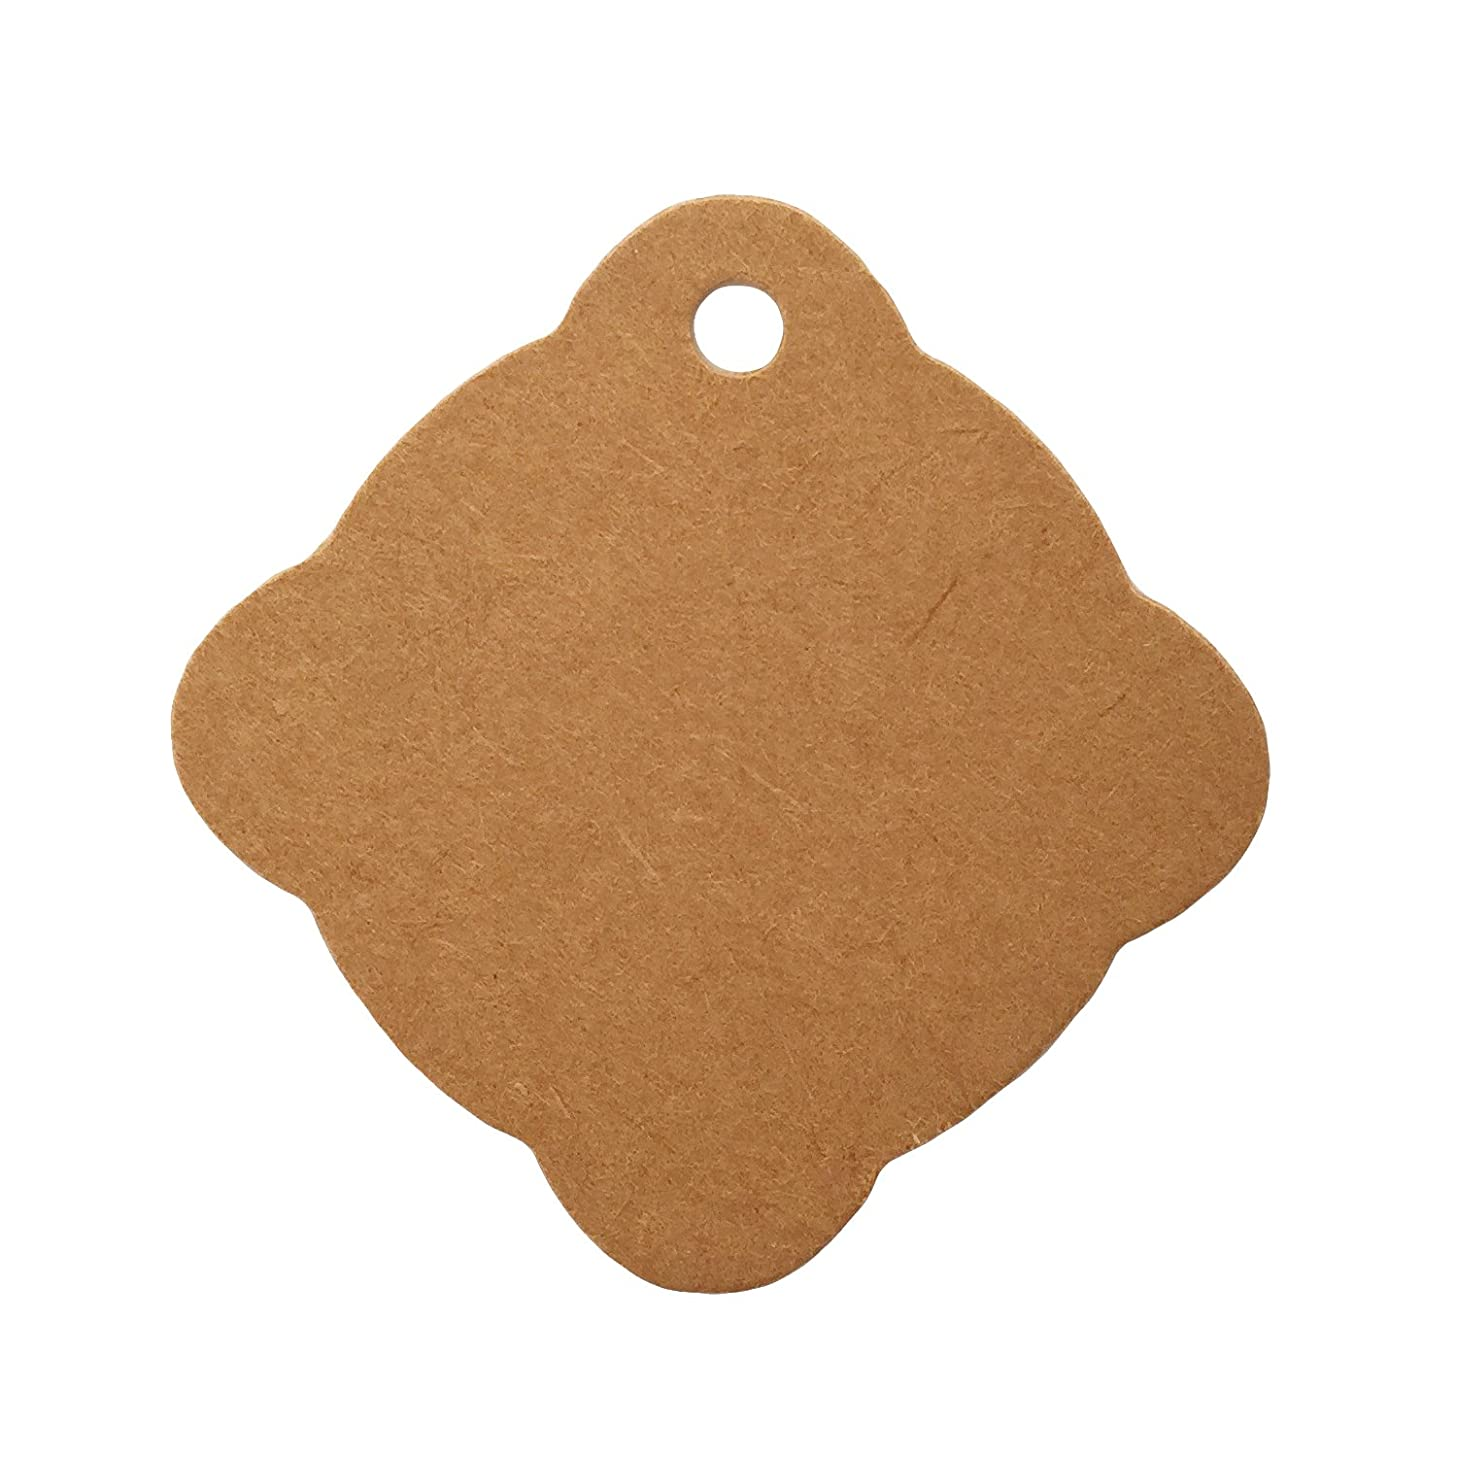 LWR Crafts 100 Hang Tags Scalloped Diamond with Jute Twines 100ft (Kraft, 2